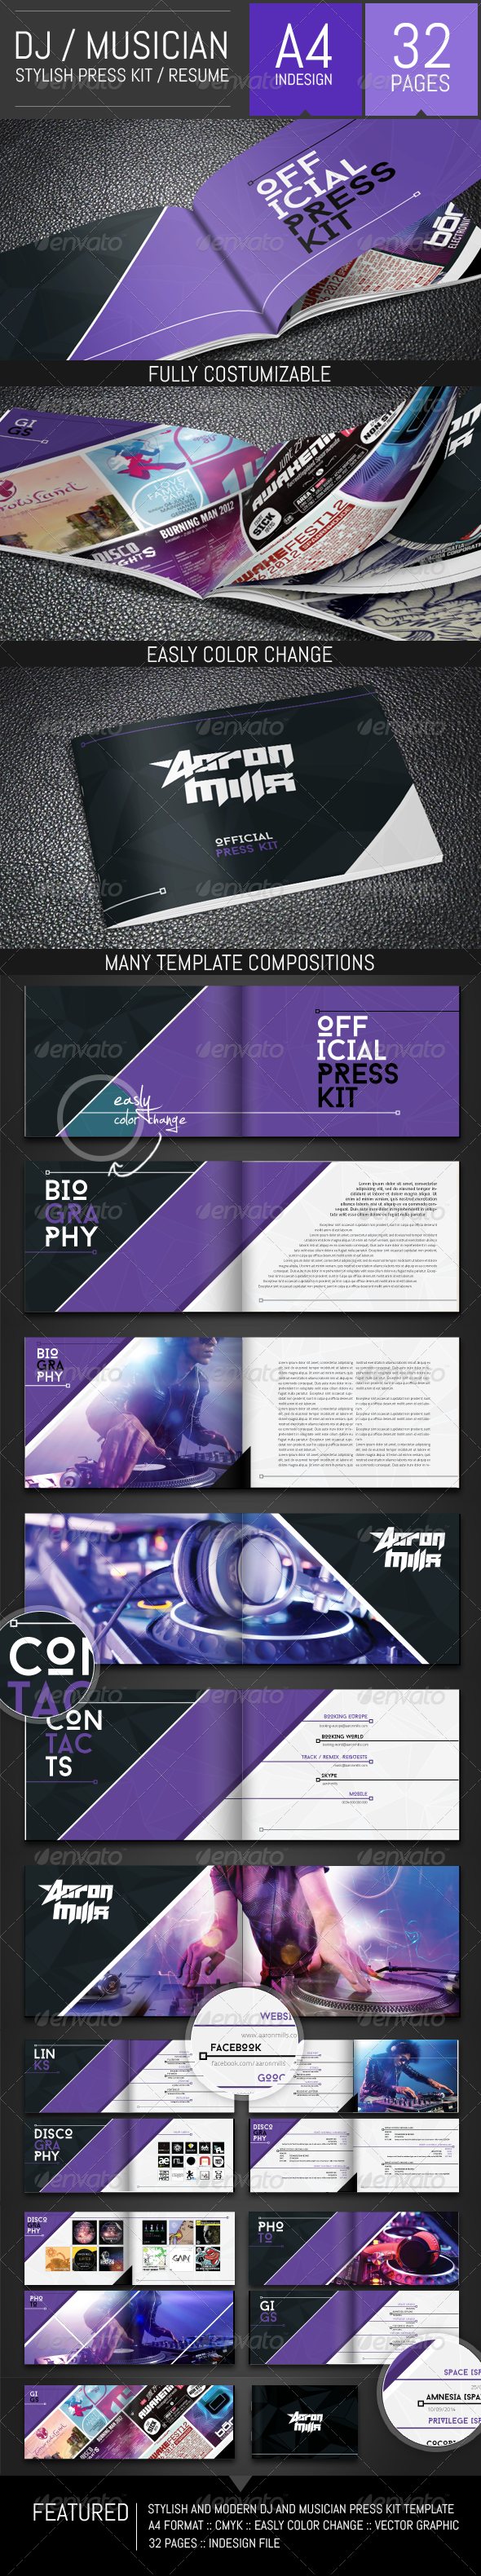 Dj and musician press kit resume template by dogmadesign for Dj press kit template free